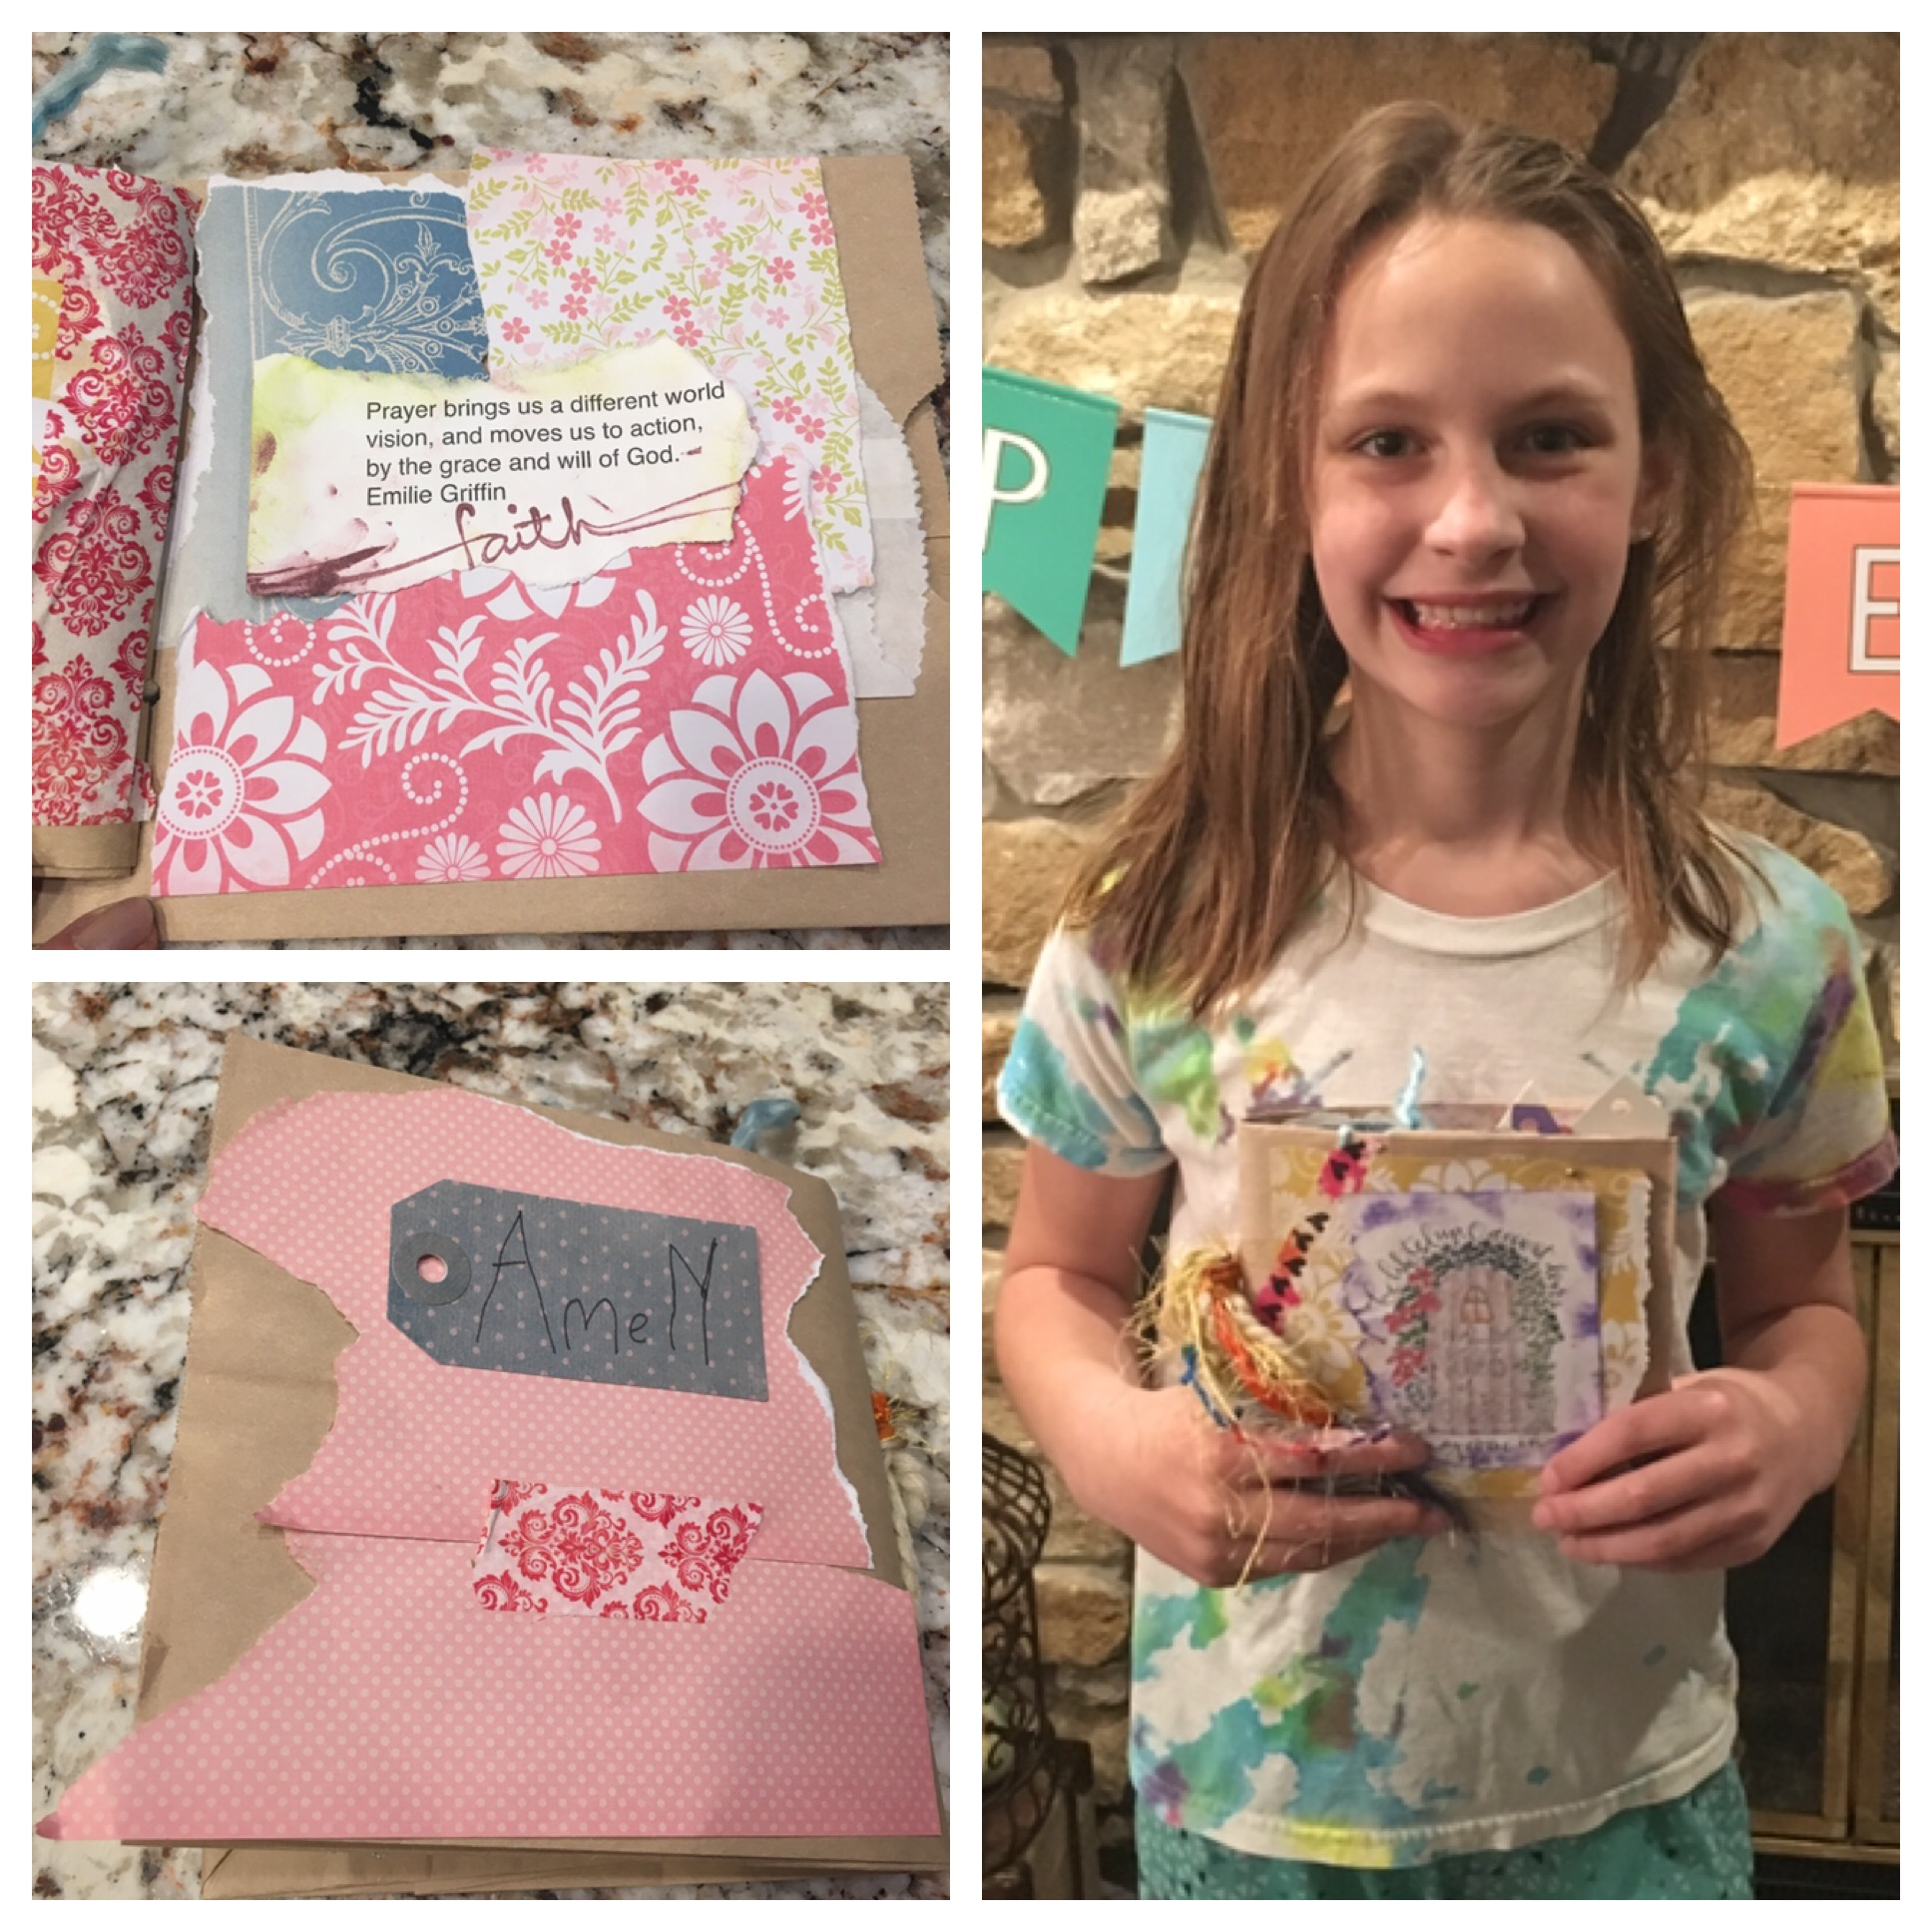 Our youngest attendee loved making her paper bag journal and sharing the story of prayer in her life. Maybe it is time for YOU to think about putting together a Visual faith event in your faith community!